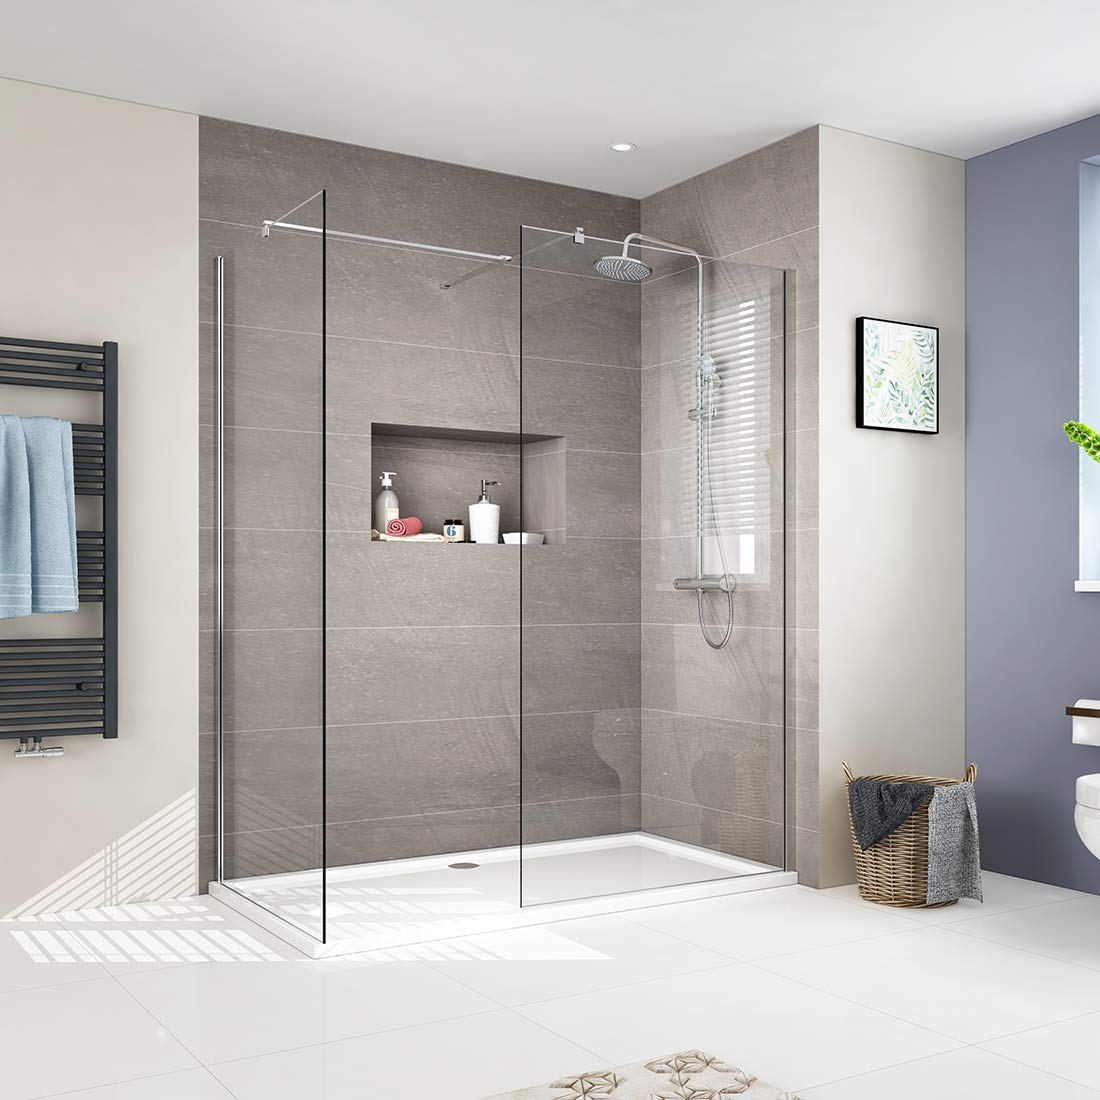 2Screen - Clear 800mm & 900mm 800mm Walk in Shower Enclosure 8mm EasyClean Glass Wetroom Shower Screen Panel with 900mm Side Panel